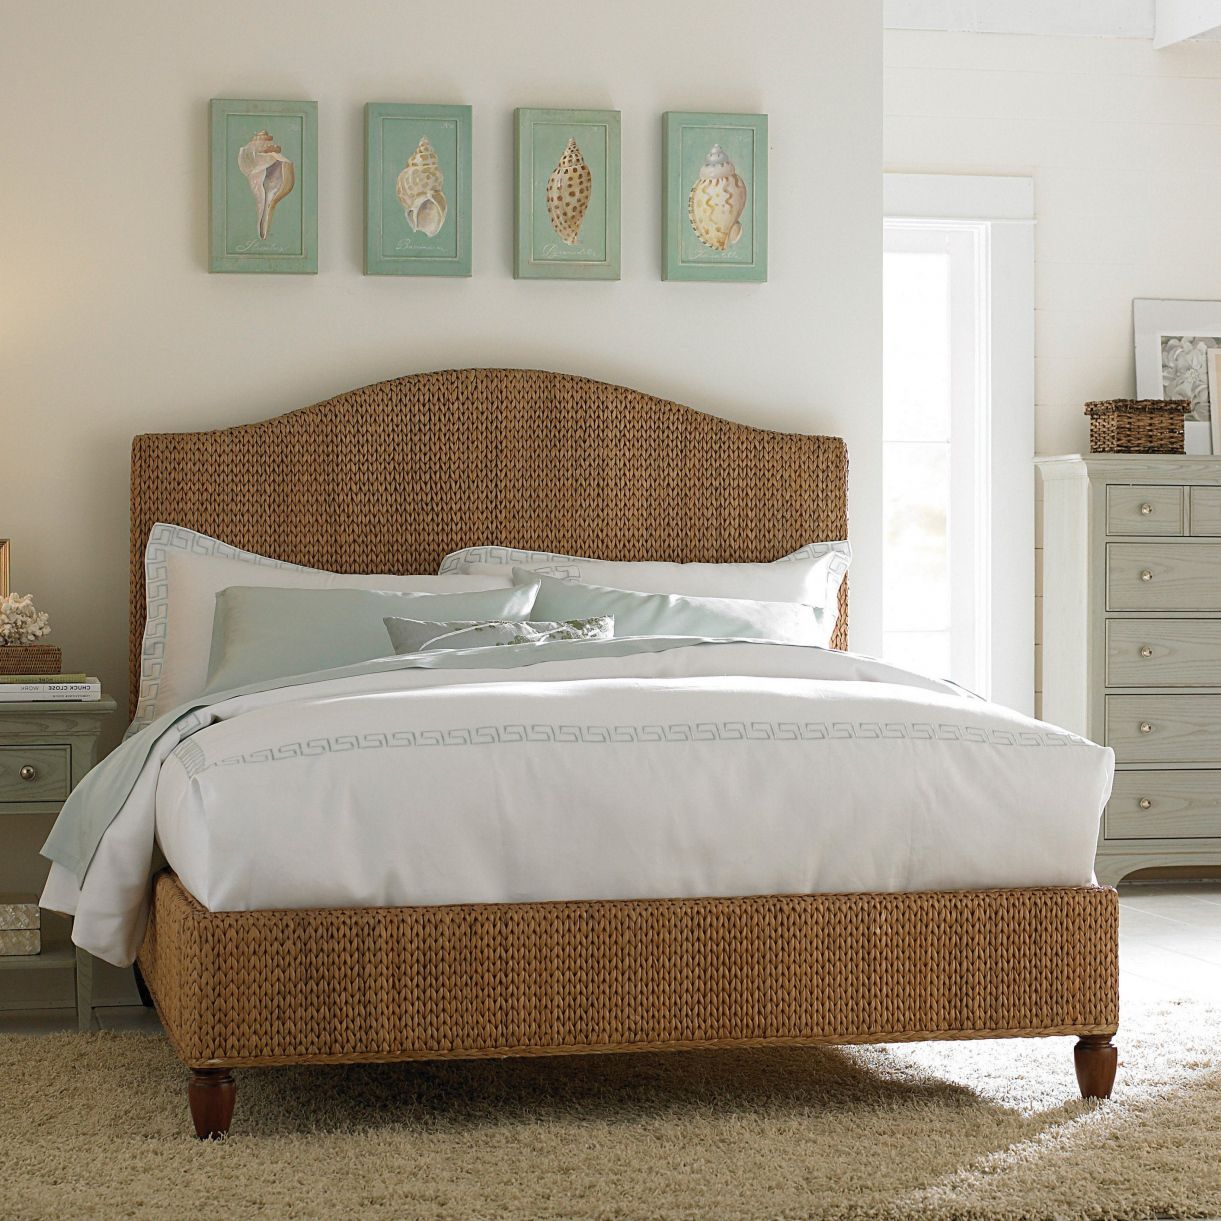 Seagrass Bedroom Furniture Interior Paint Colors Bedroom Check - Seagrass bedroom furniture